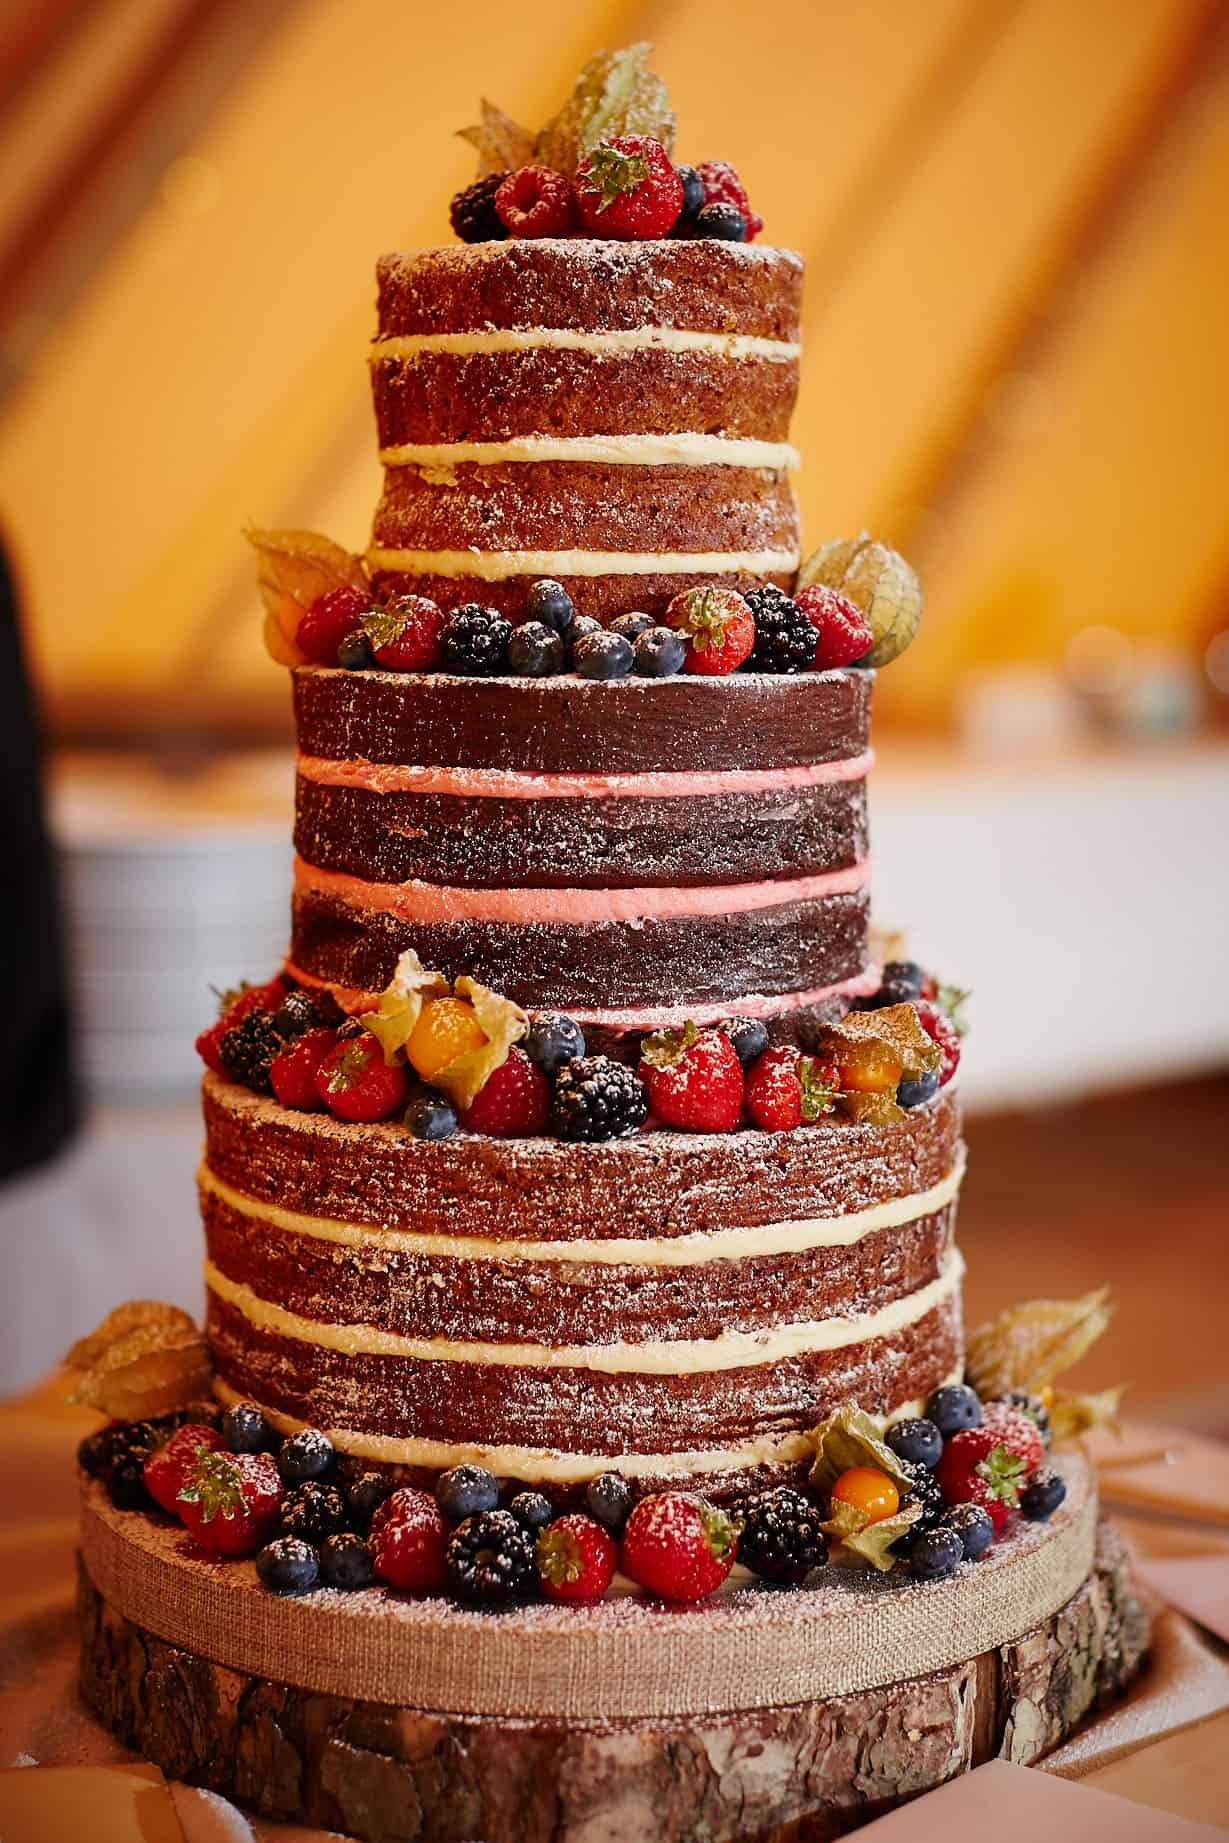 Naked wedding cake - Sami Tipi Wedding captured by Ben Pollard